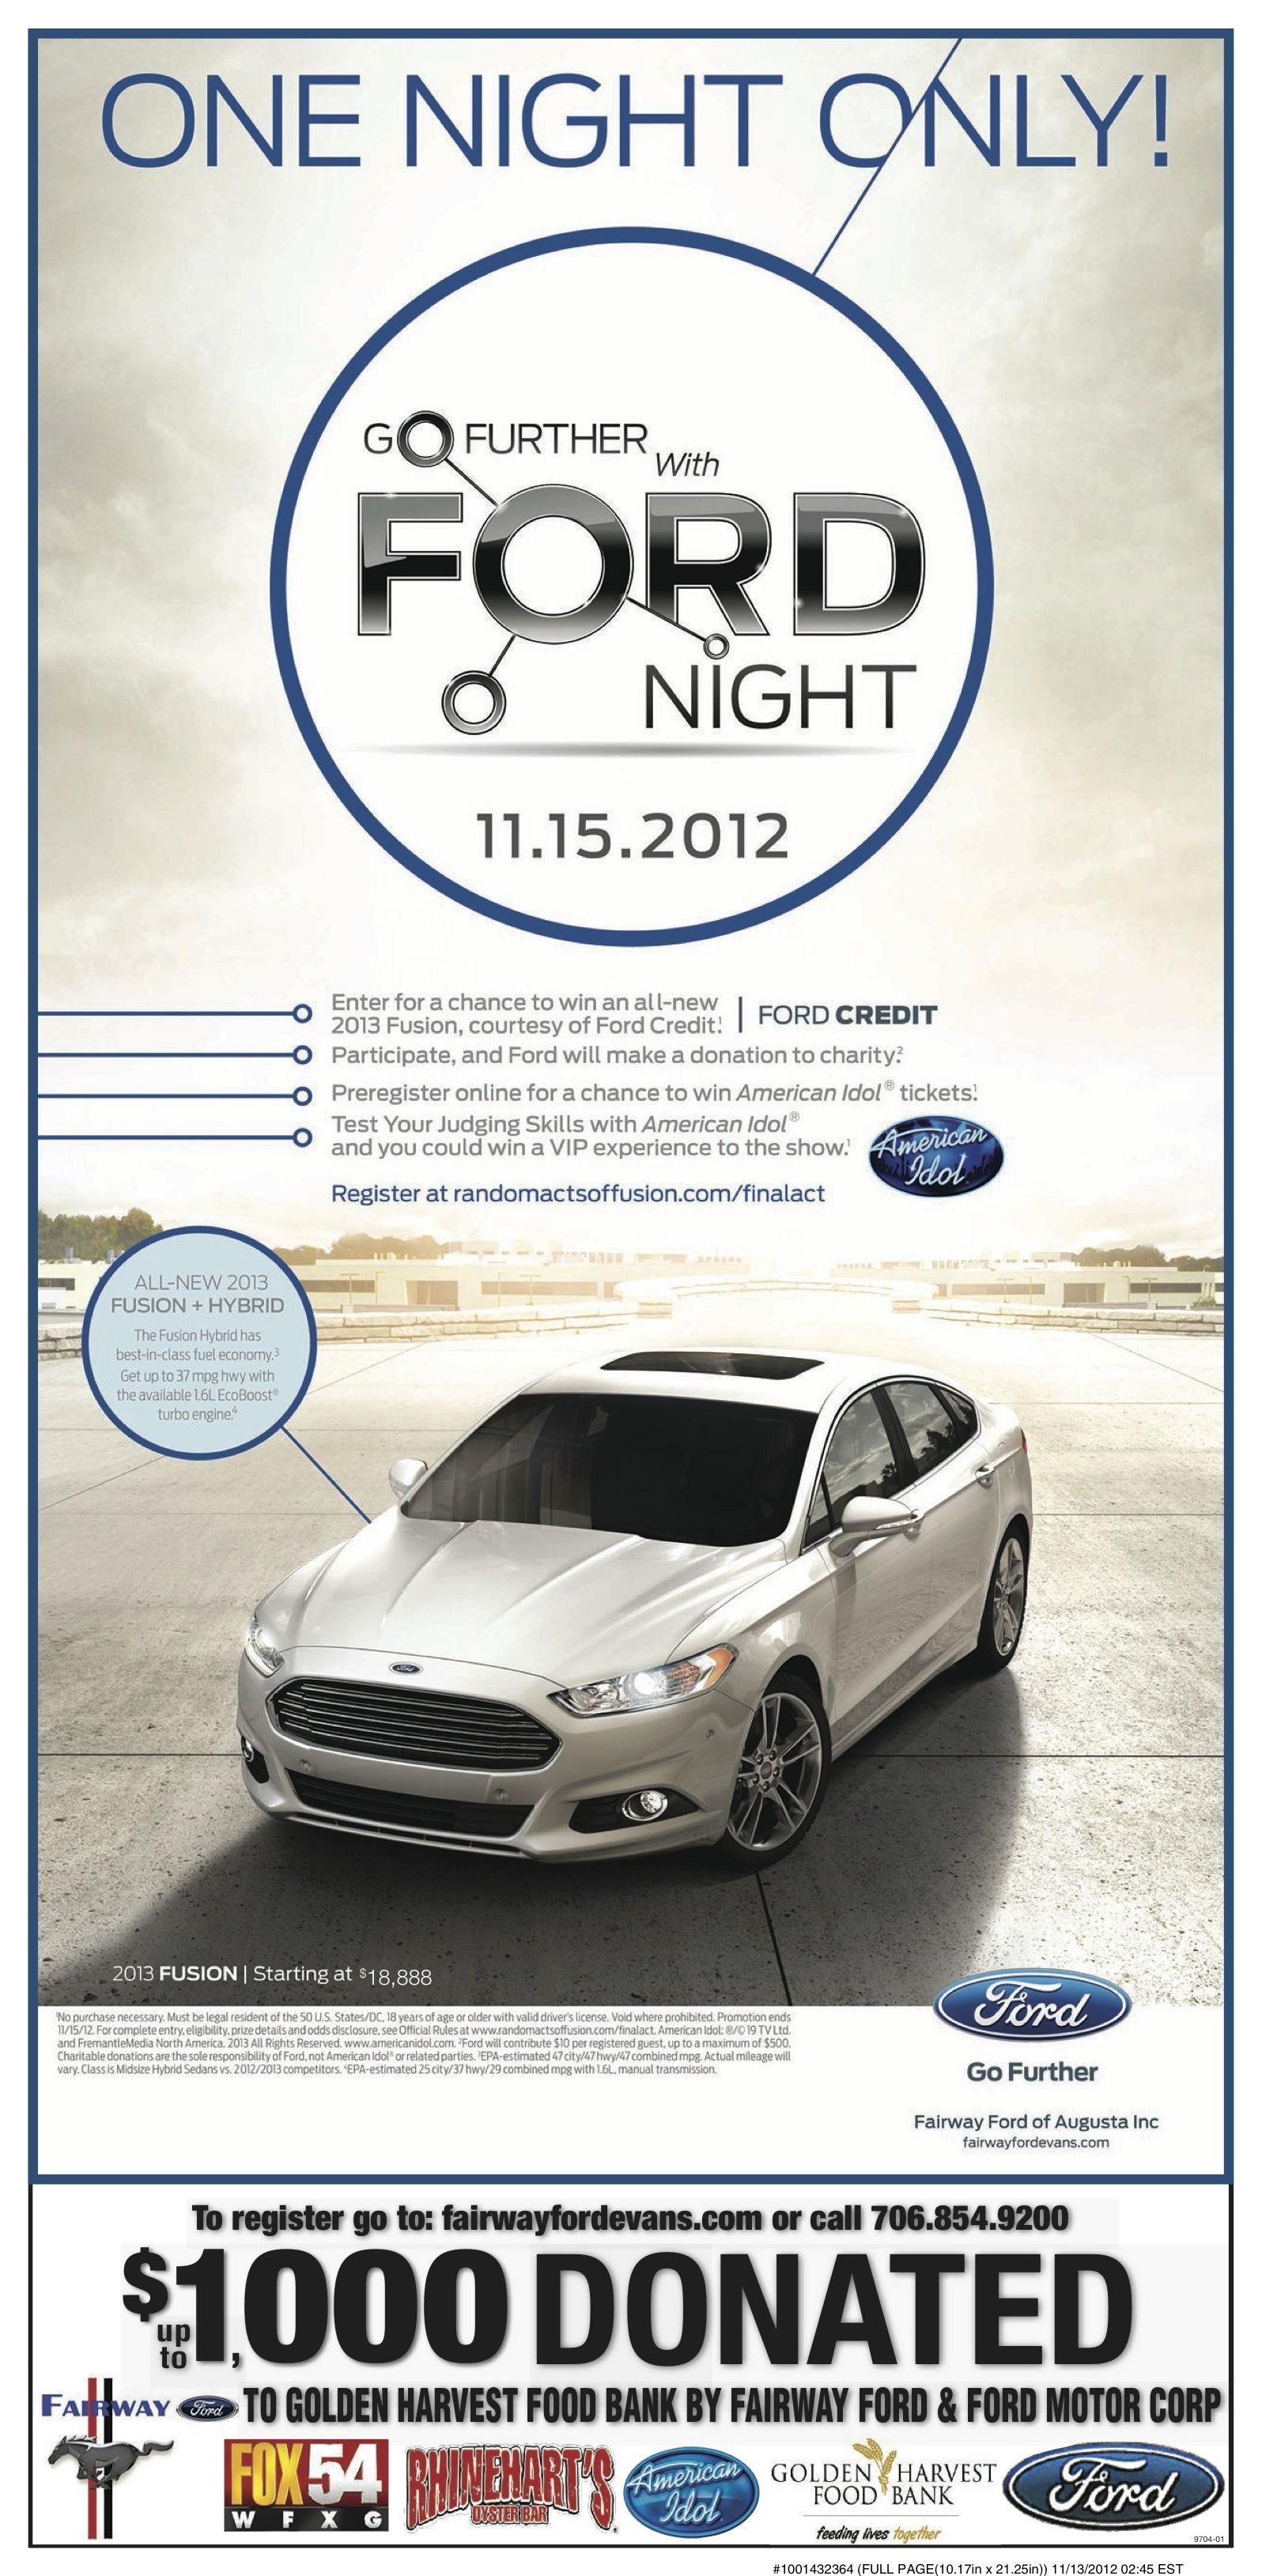 Win a Ford Fusion courtesy of Ford Credit Ford